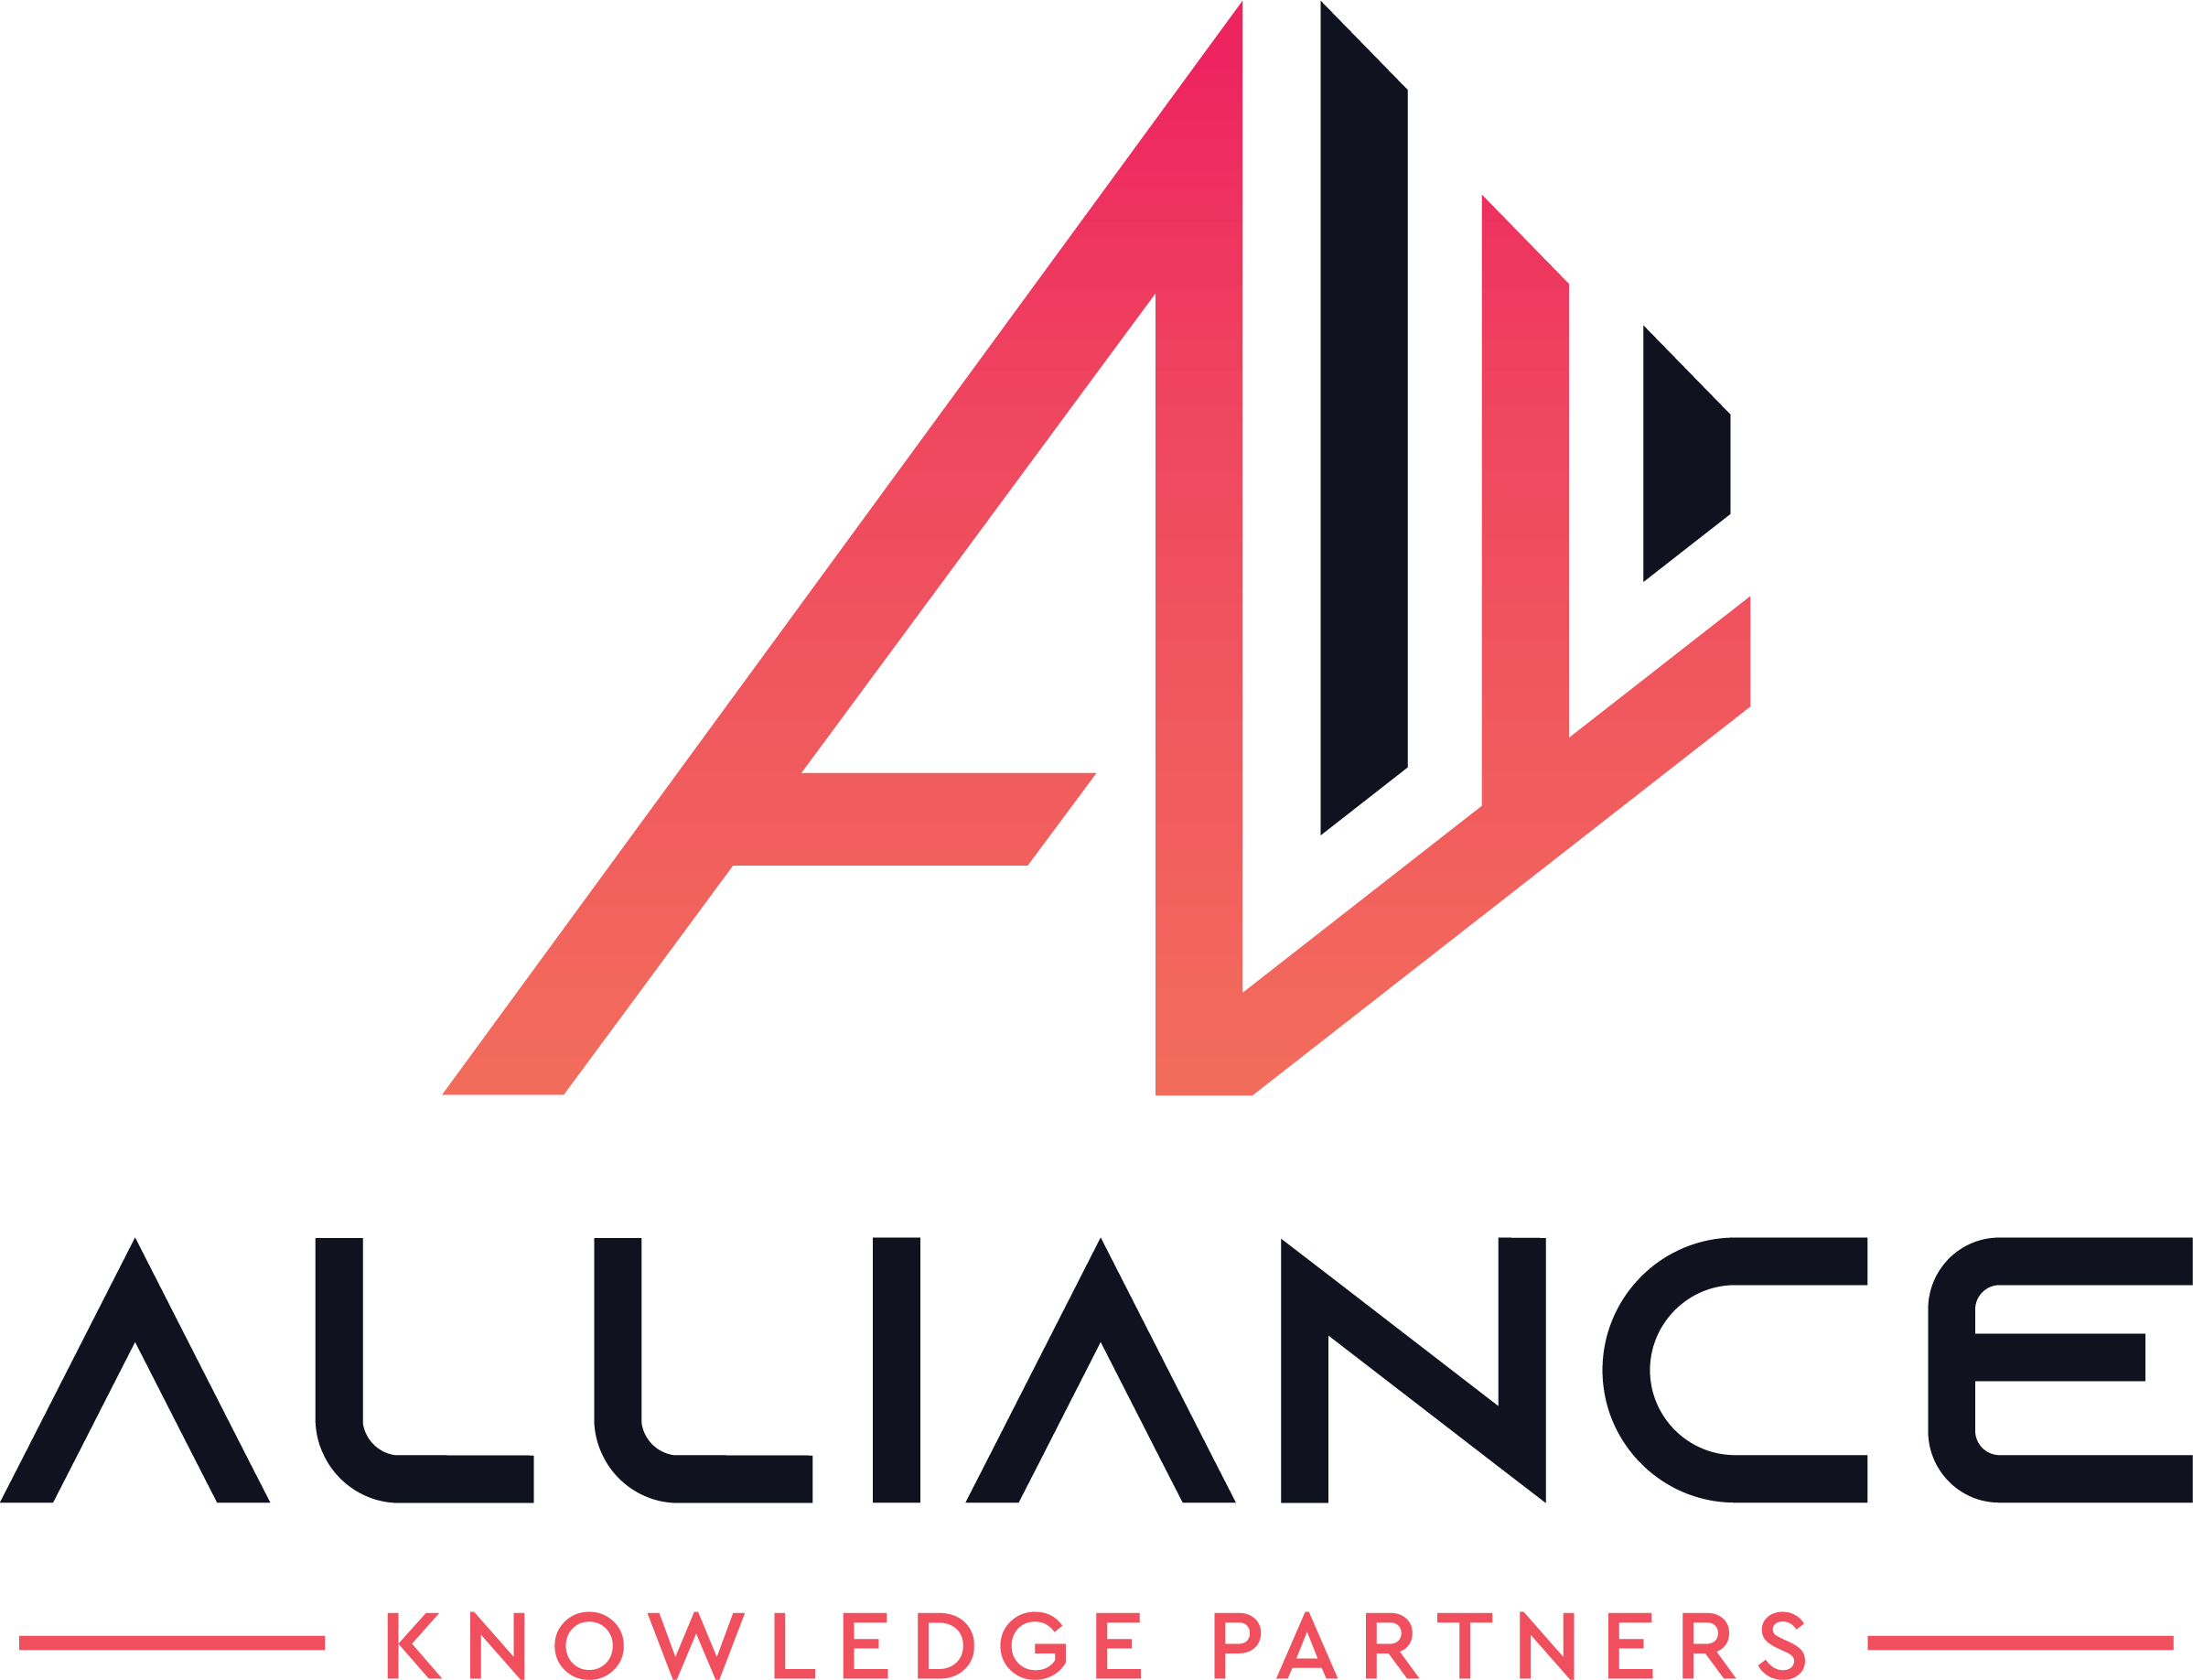 Alliance Knowledge Partners - Global Research and Knowledge Outsourcing Provider